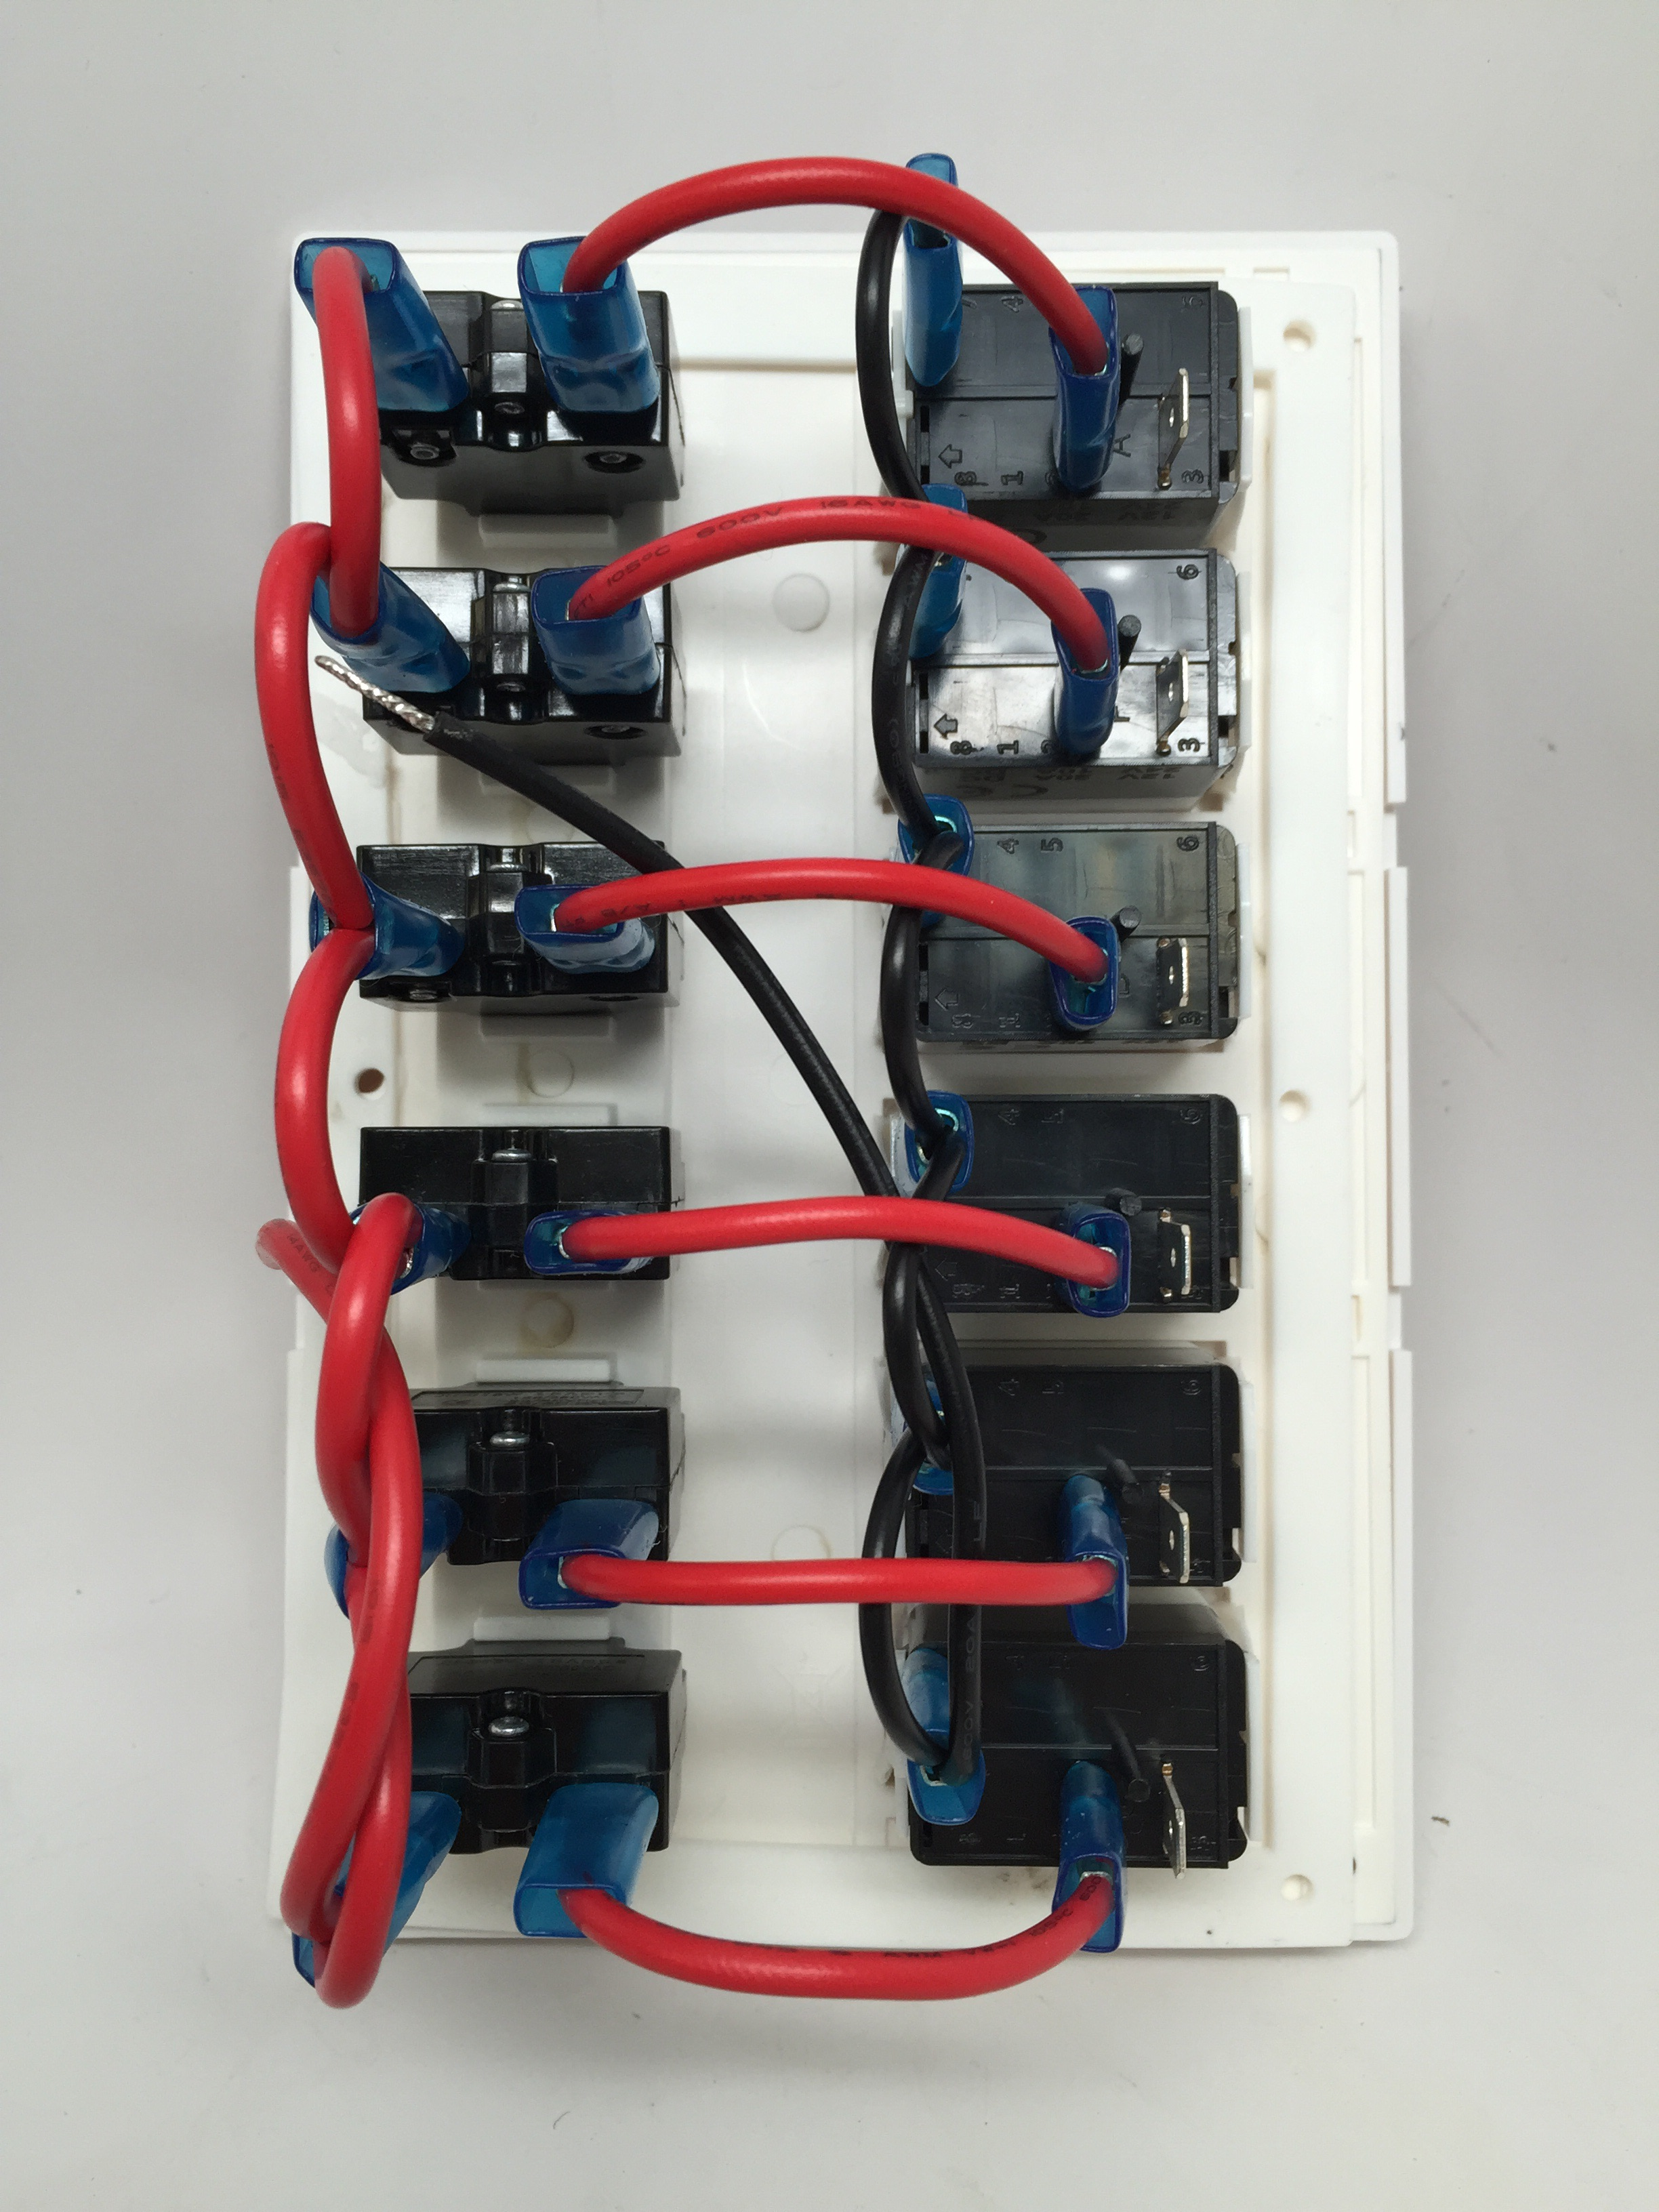 P11176WHB 6 marine boat waterproof white switch panel circuit breaker 6 gang marine switch panel wiring diagram at mifinder.co